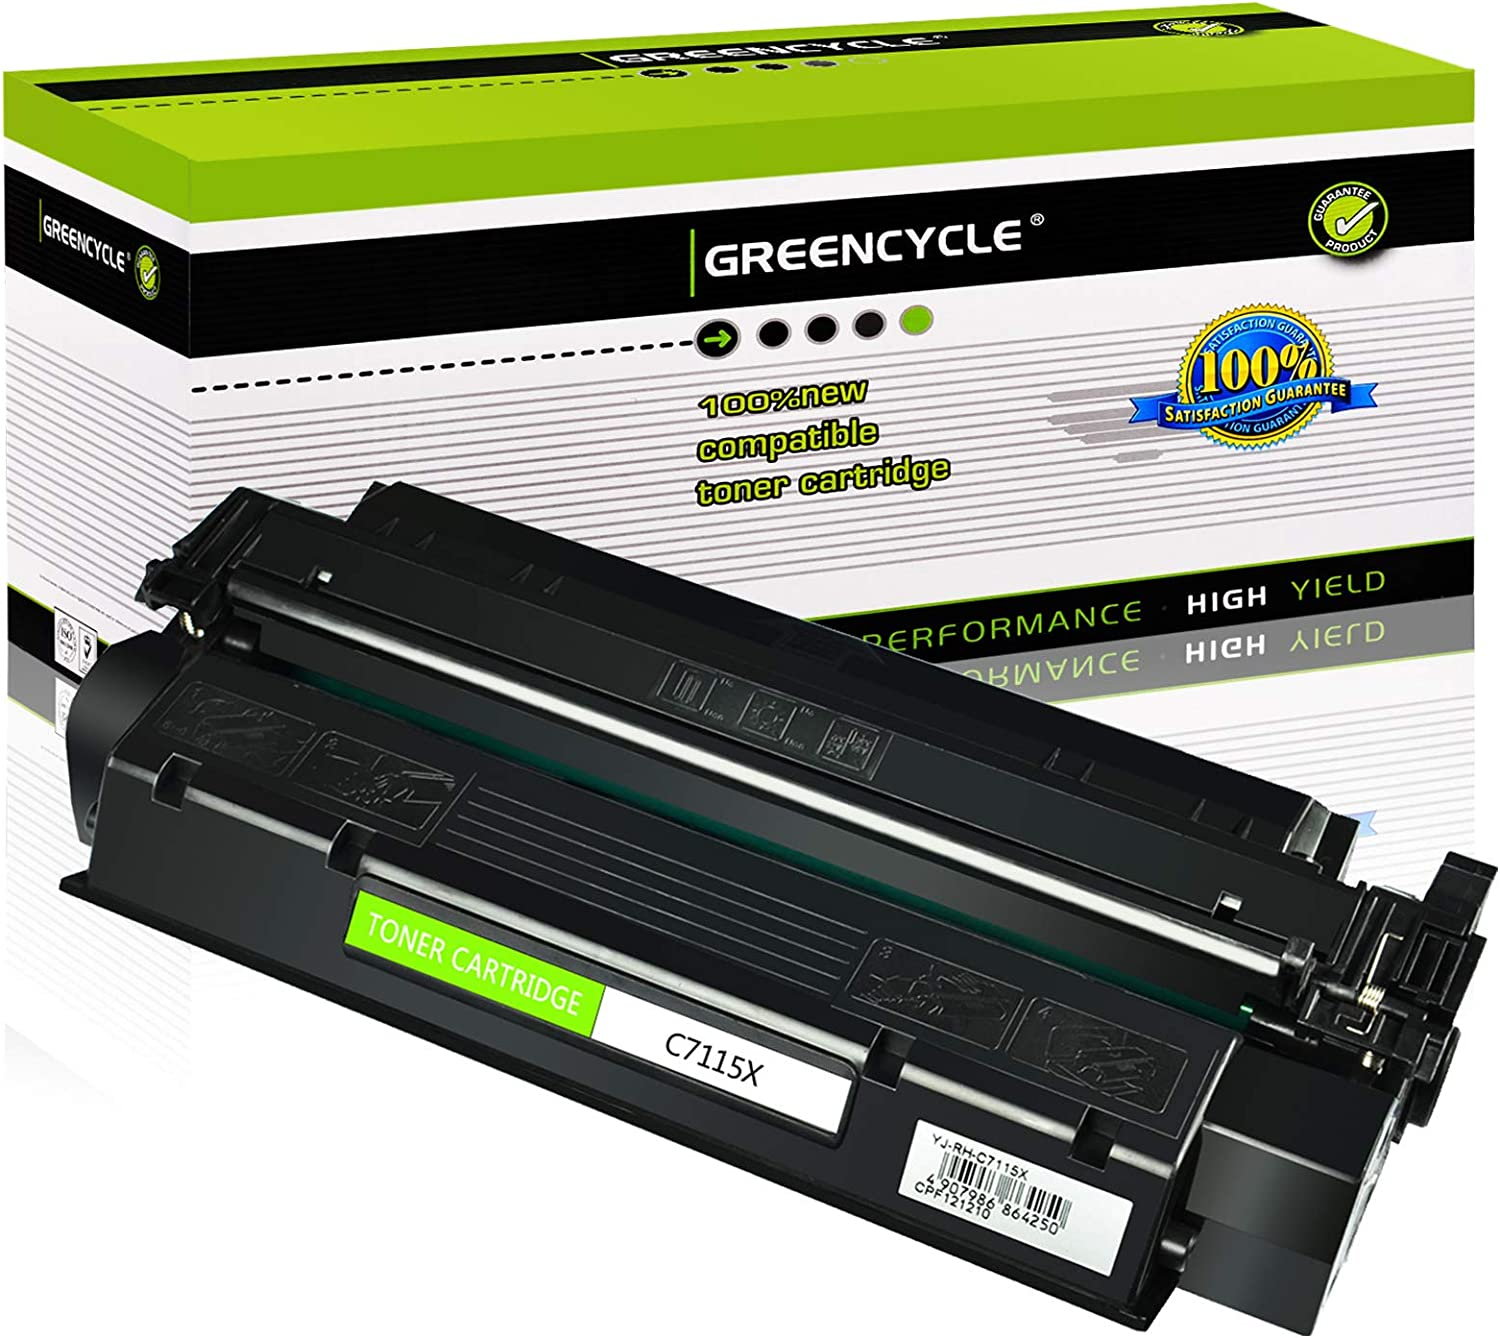 GREENCYCLE 1 PK Compatible C7115X 15X Black Laserjet Toner Cartridge Replacement for HP Laserjet 1000 1200 1220 3300 3310 3320 3330 3380 Series Printer